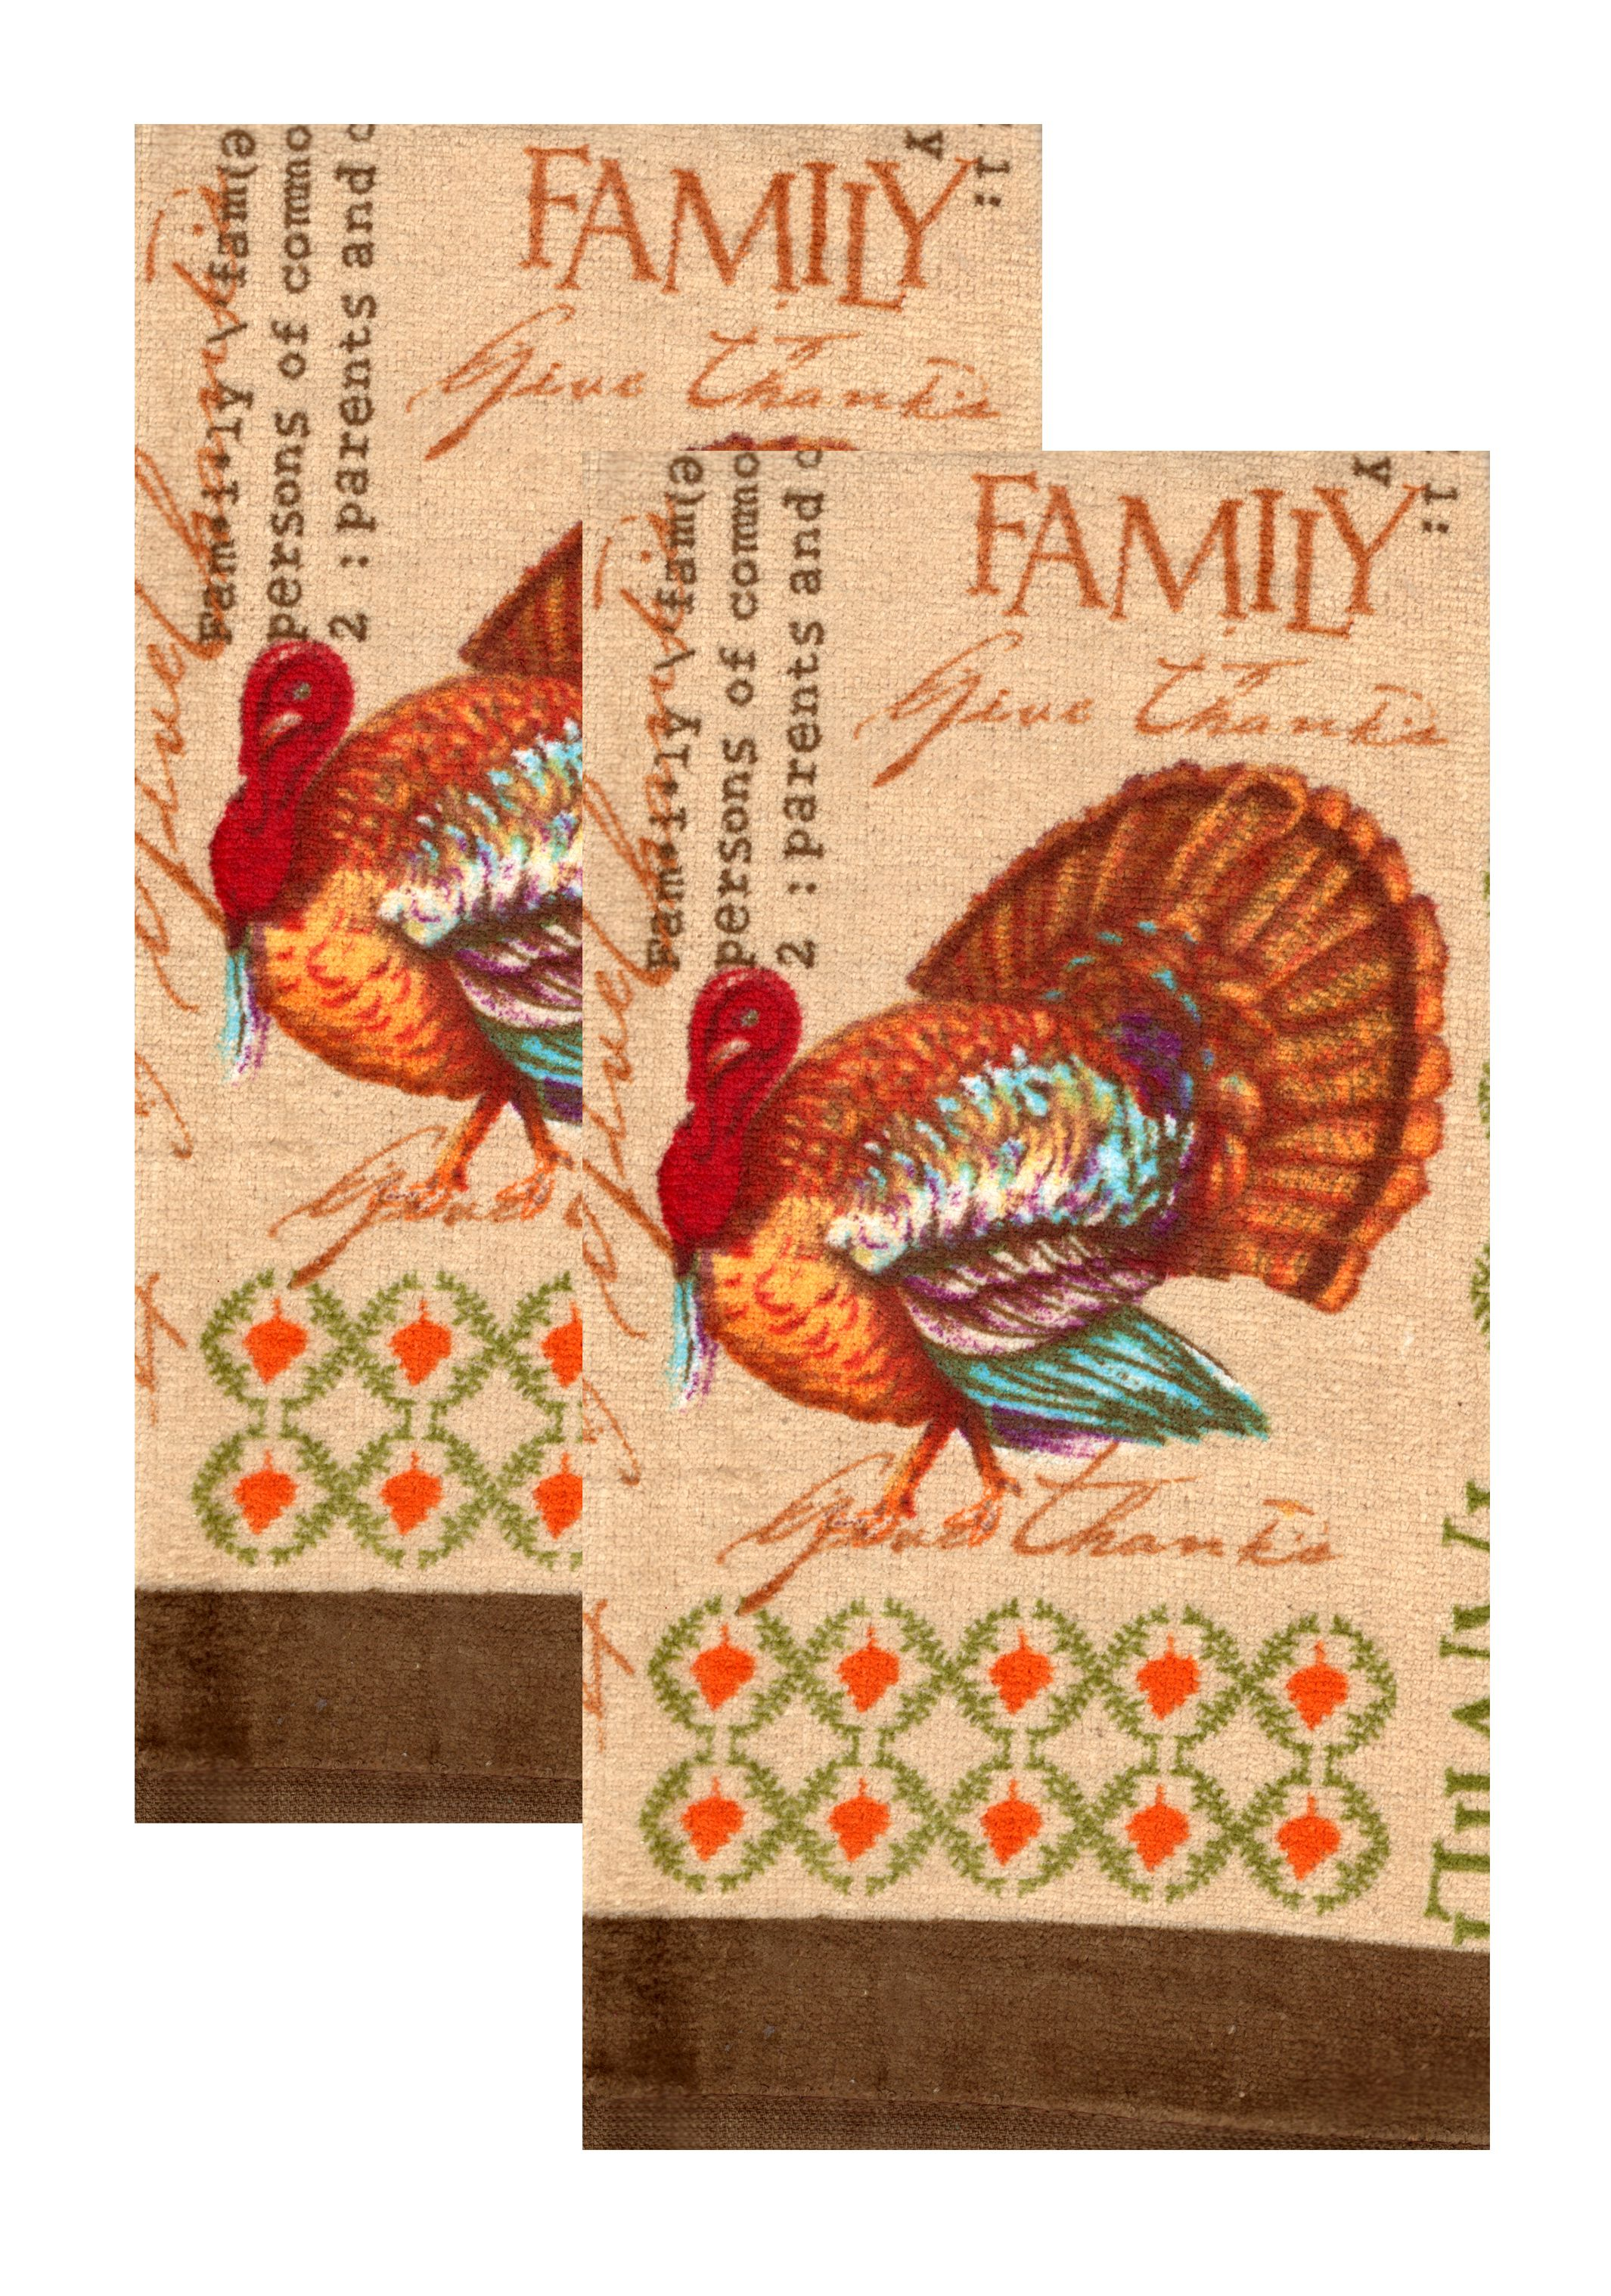 Ordinaire Kitchen Towels Thanksgiving Turkey Family Give Thanks, Set Of 2    Walmart.com